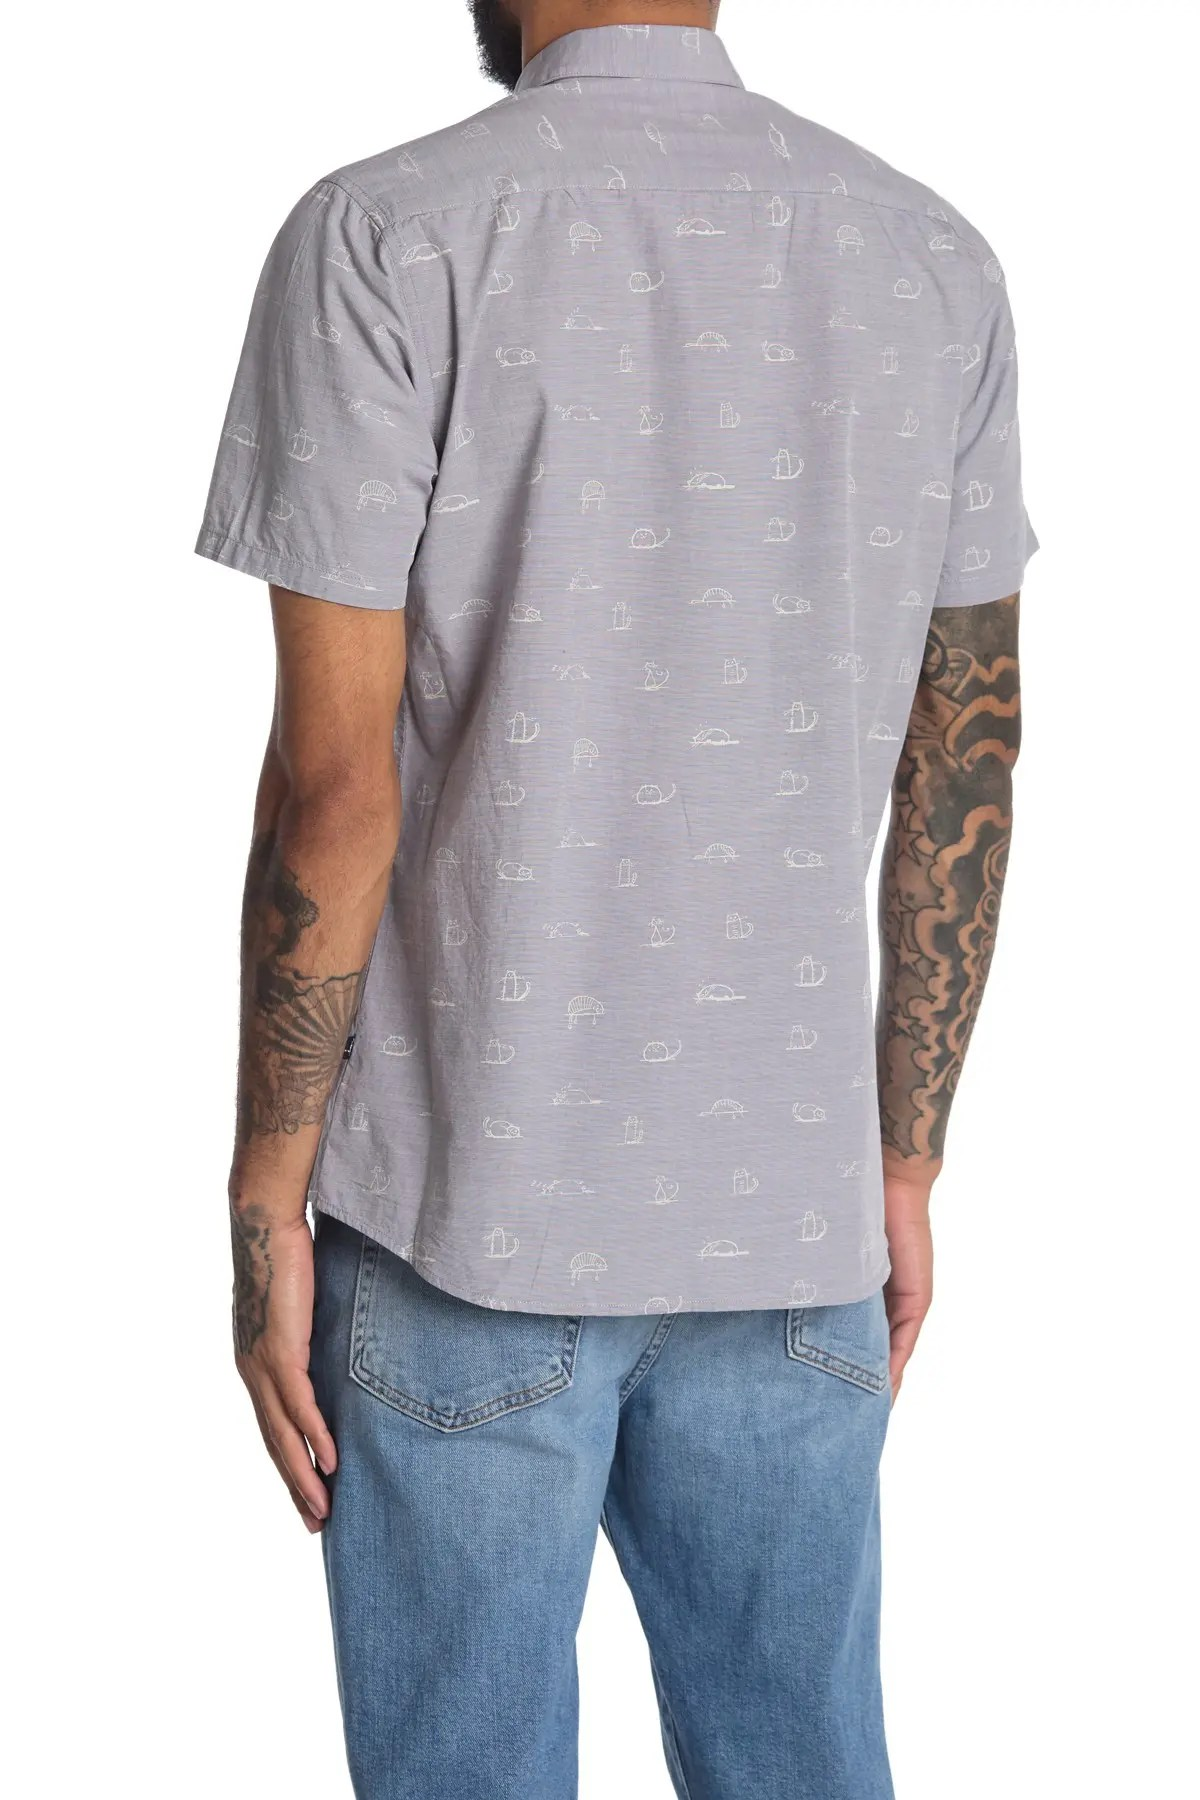 casual button down shirts clearance